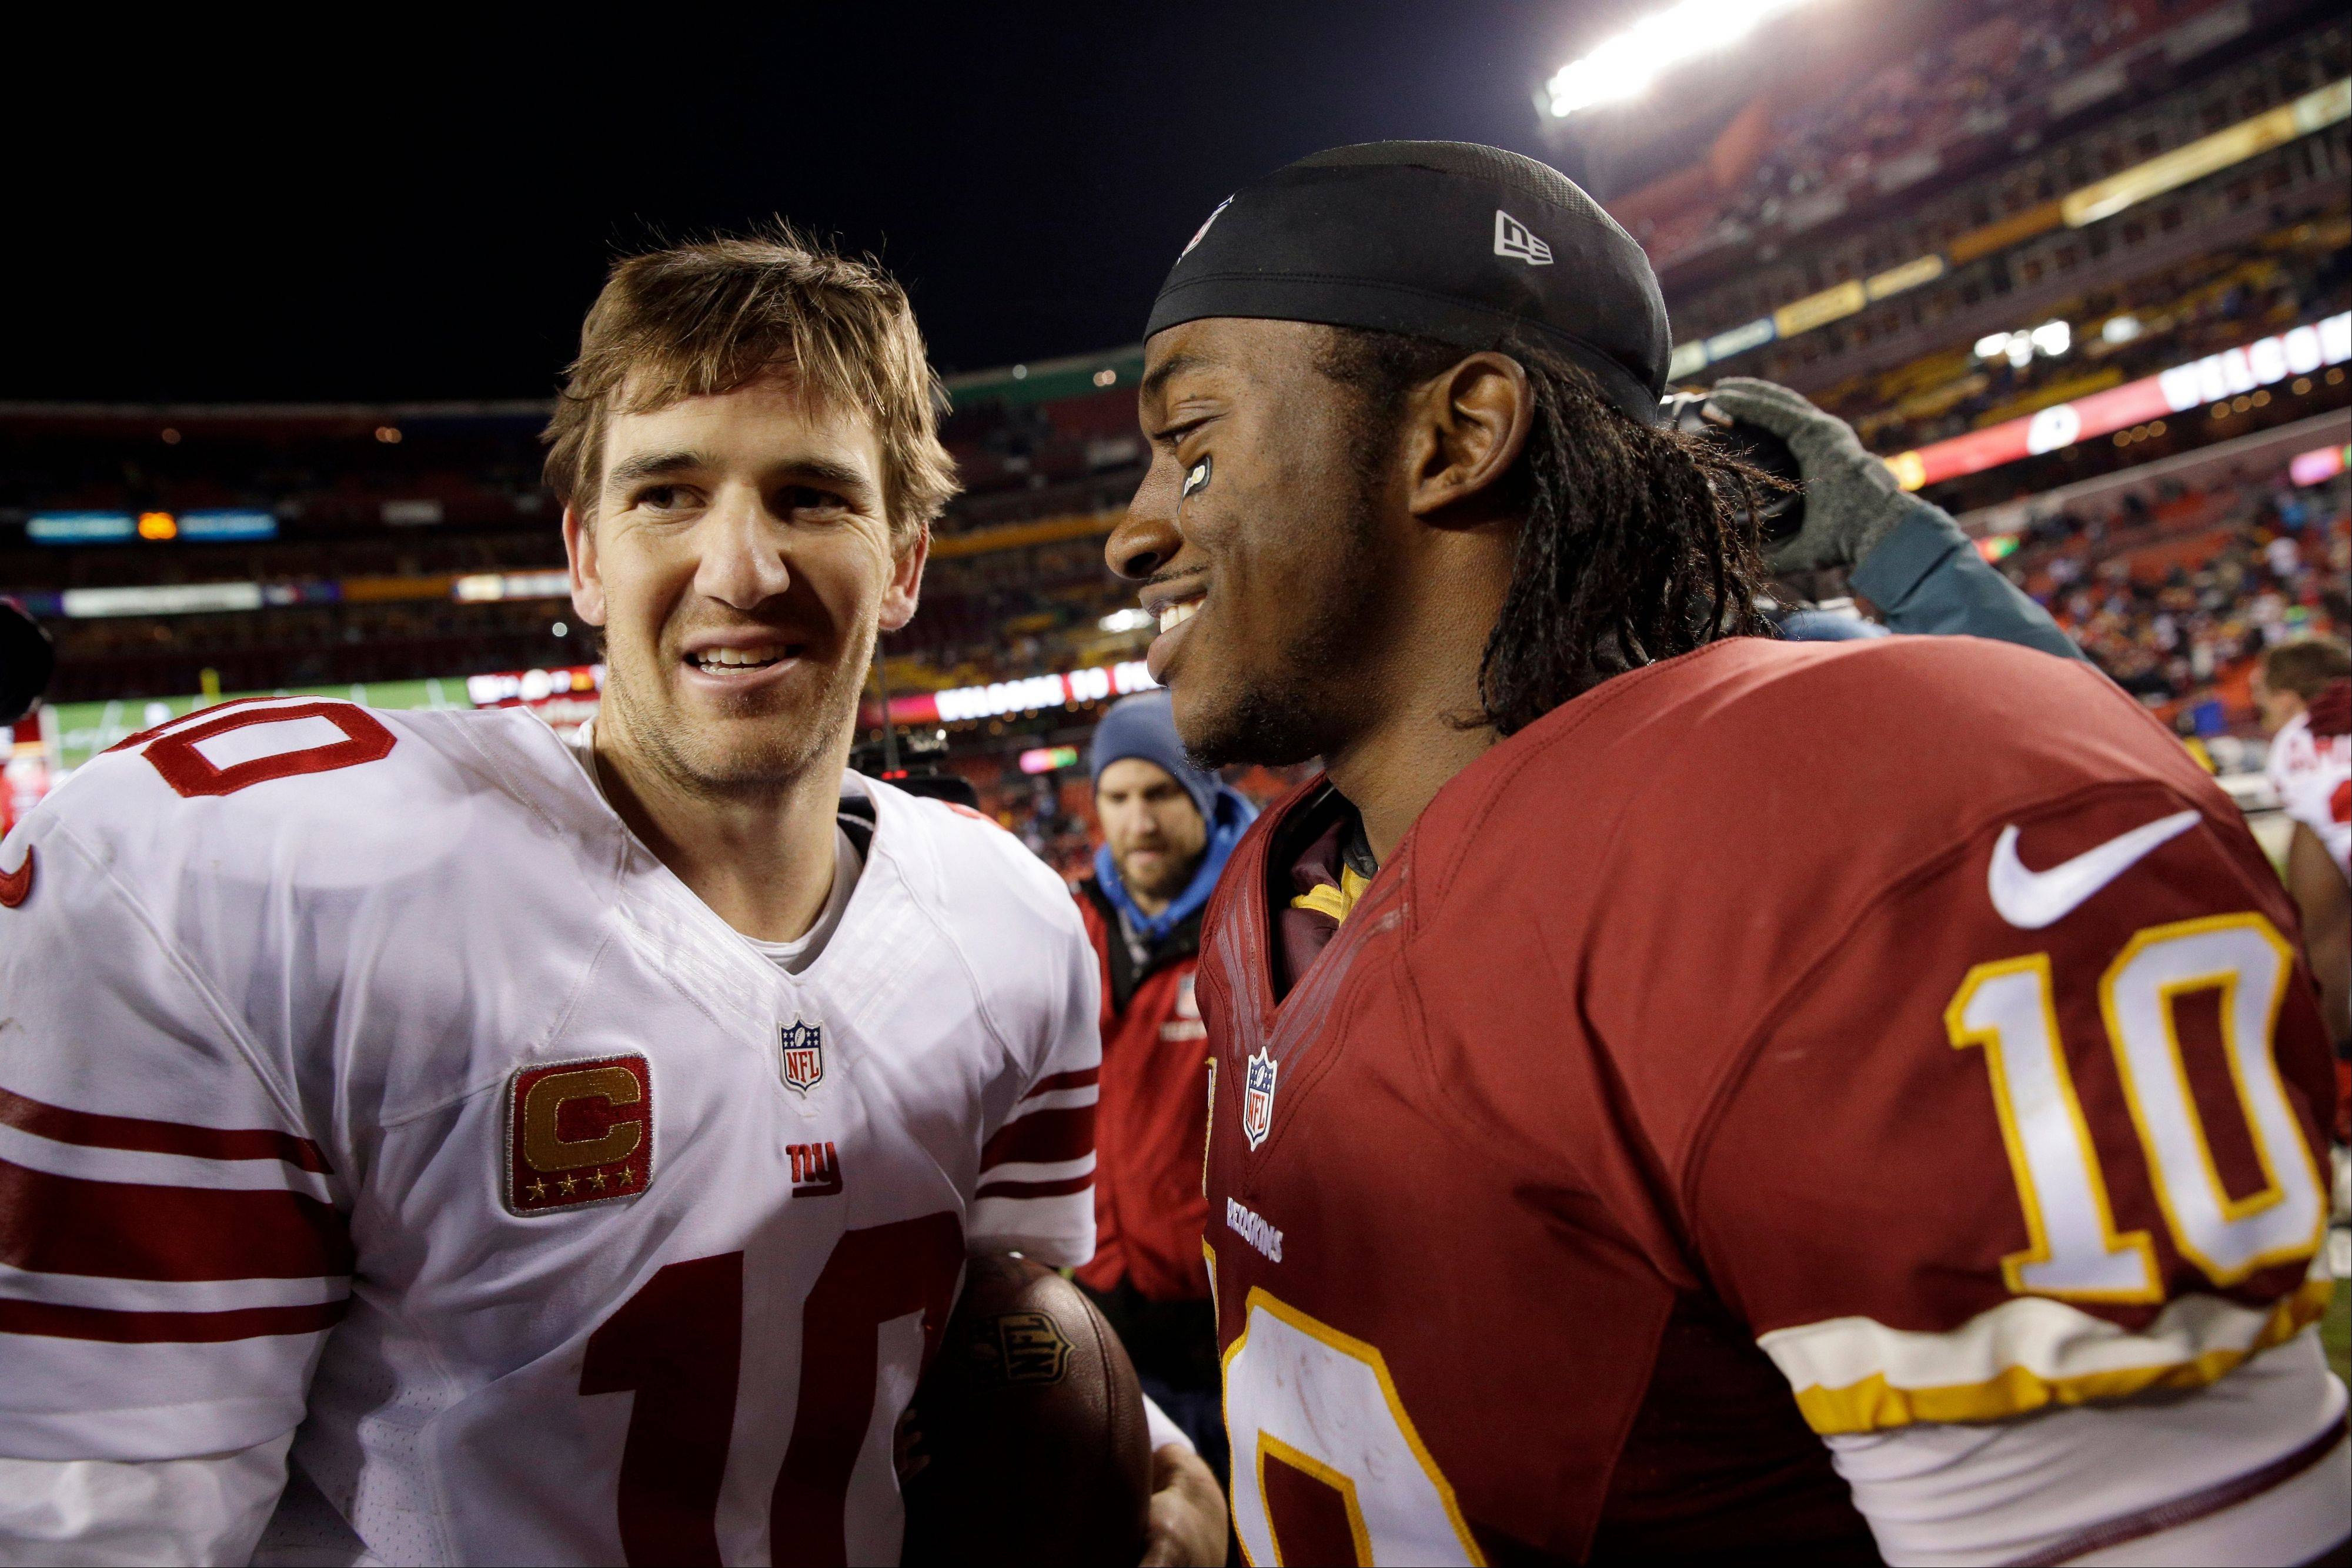 New York Giants quarterback Eli Manning, left, talks with Washington Redskins quarterback Robert Griffin III after the game Sunday in Landover, Md.